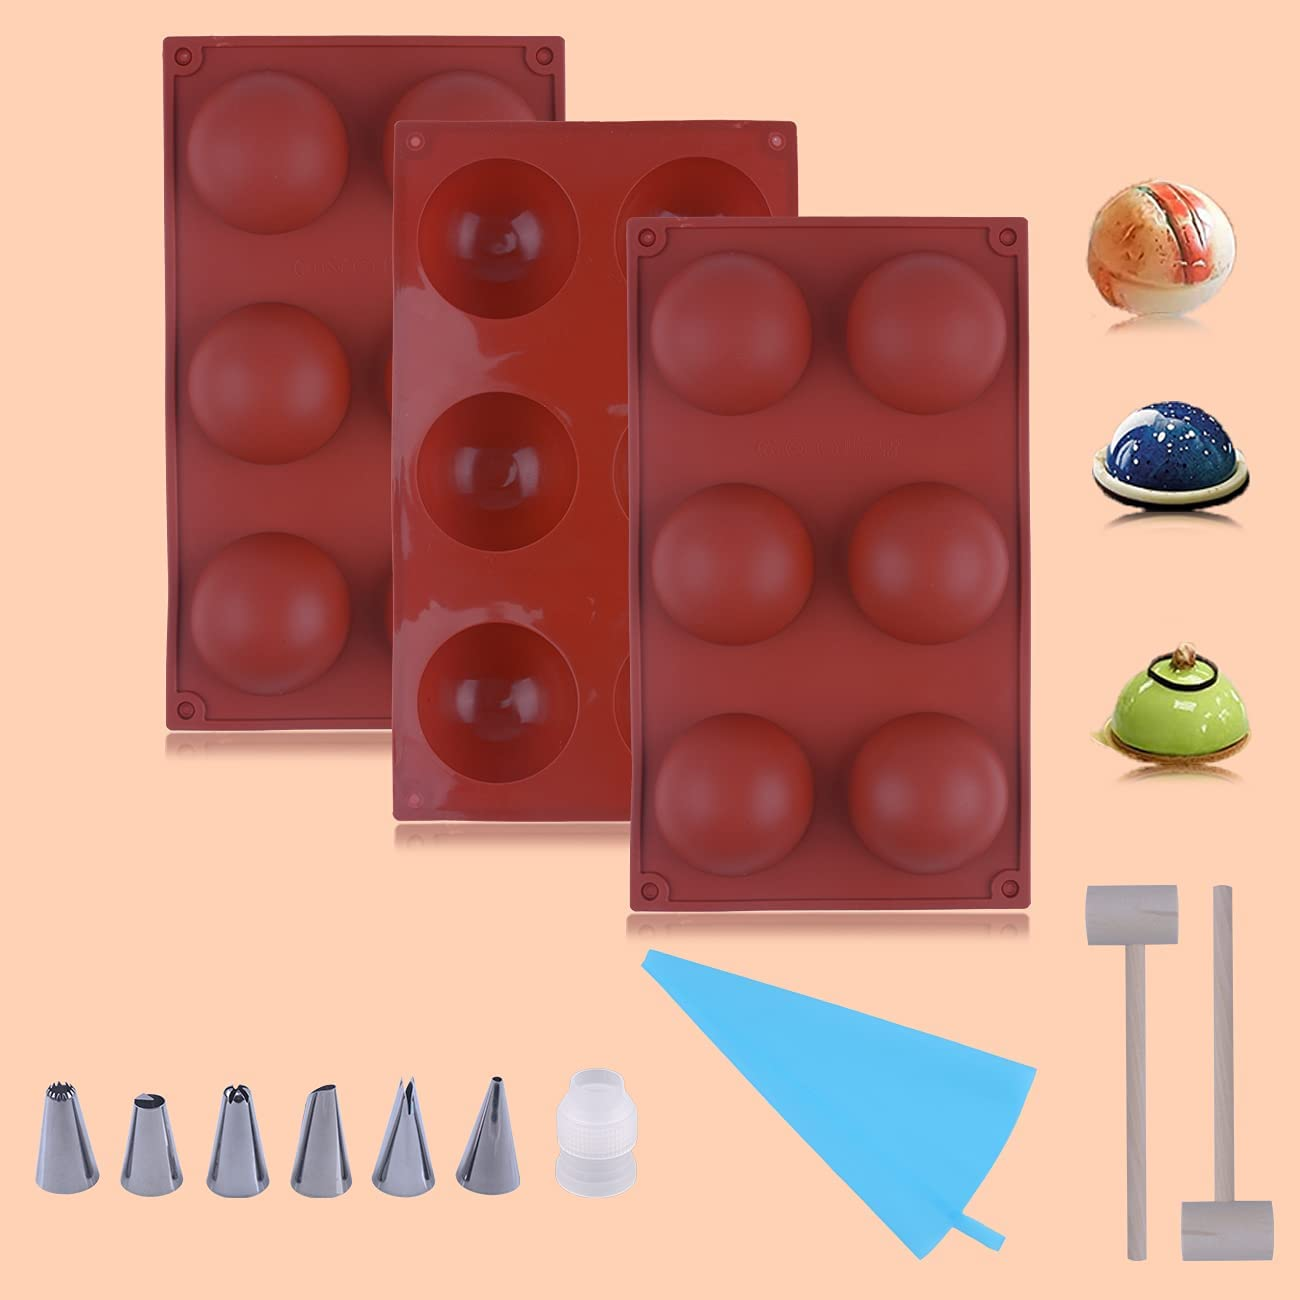 3PCS Semicircle Silicone Mold, 6 Holes Half Sphere Silicone Mold,Silicone Molds for Chocolate Bombs, Silicone Molds, 6 Holes Semi Sphere Chocolate Molds for Making Hot Chocolate Bombs, Cake, Jelly